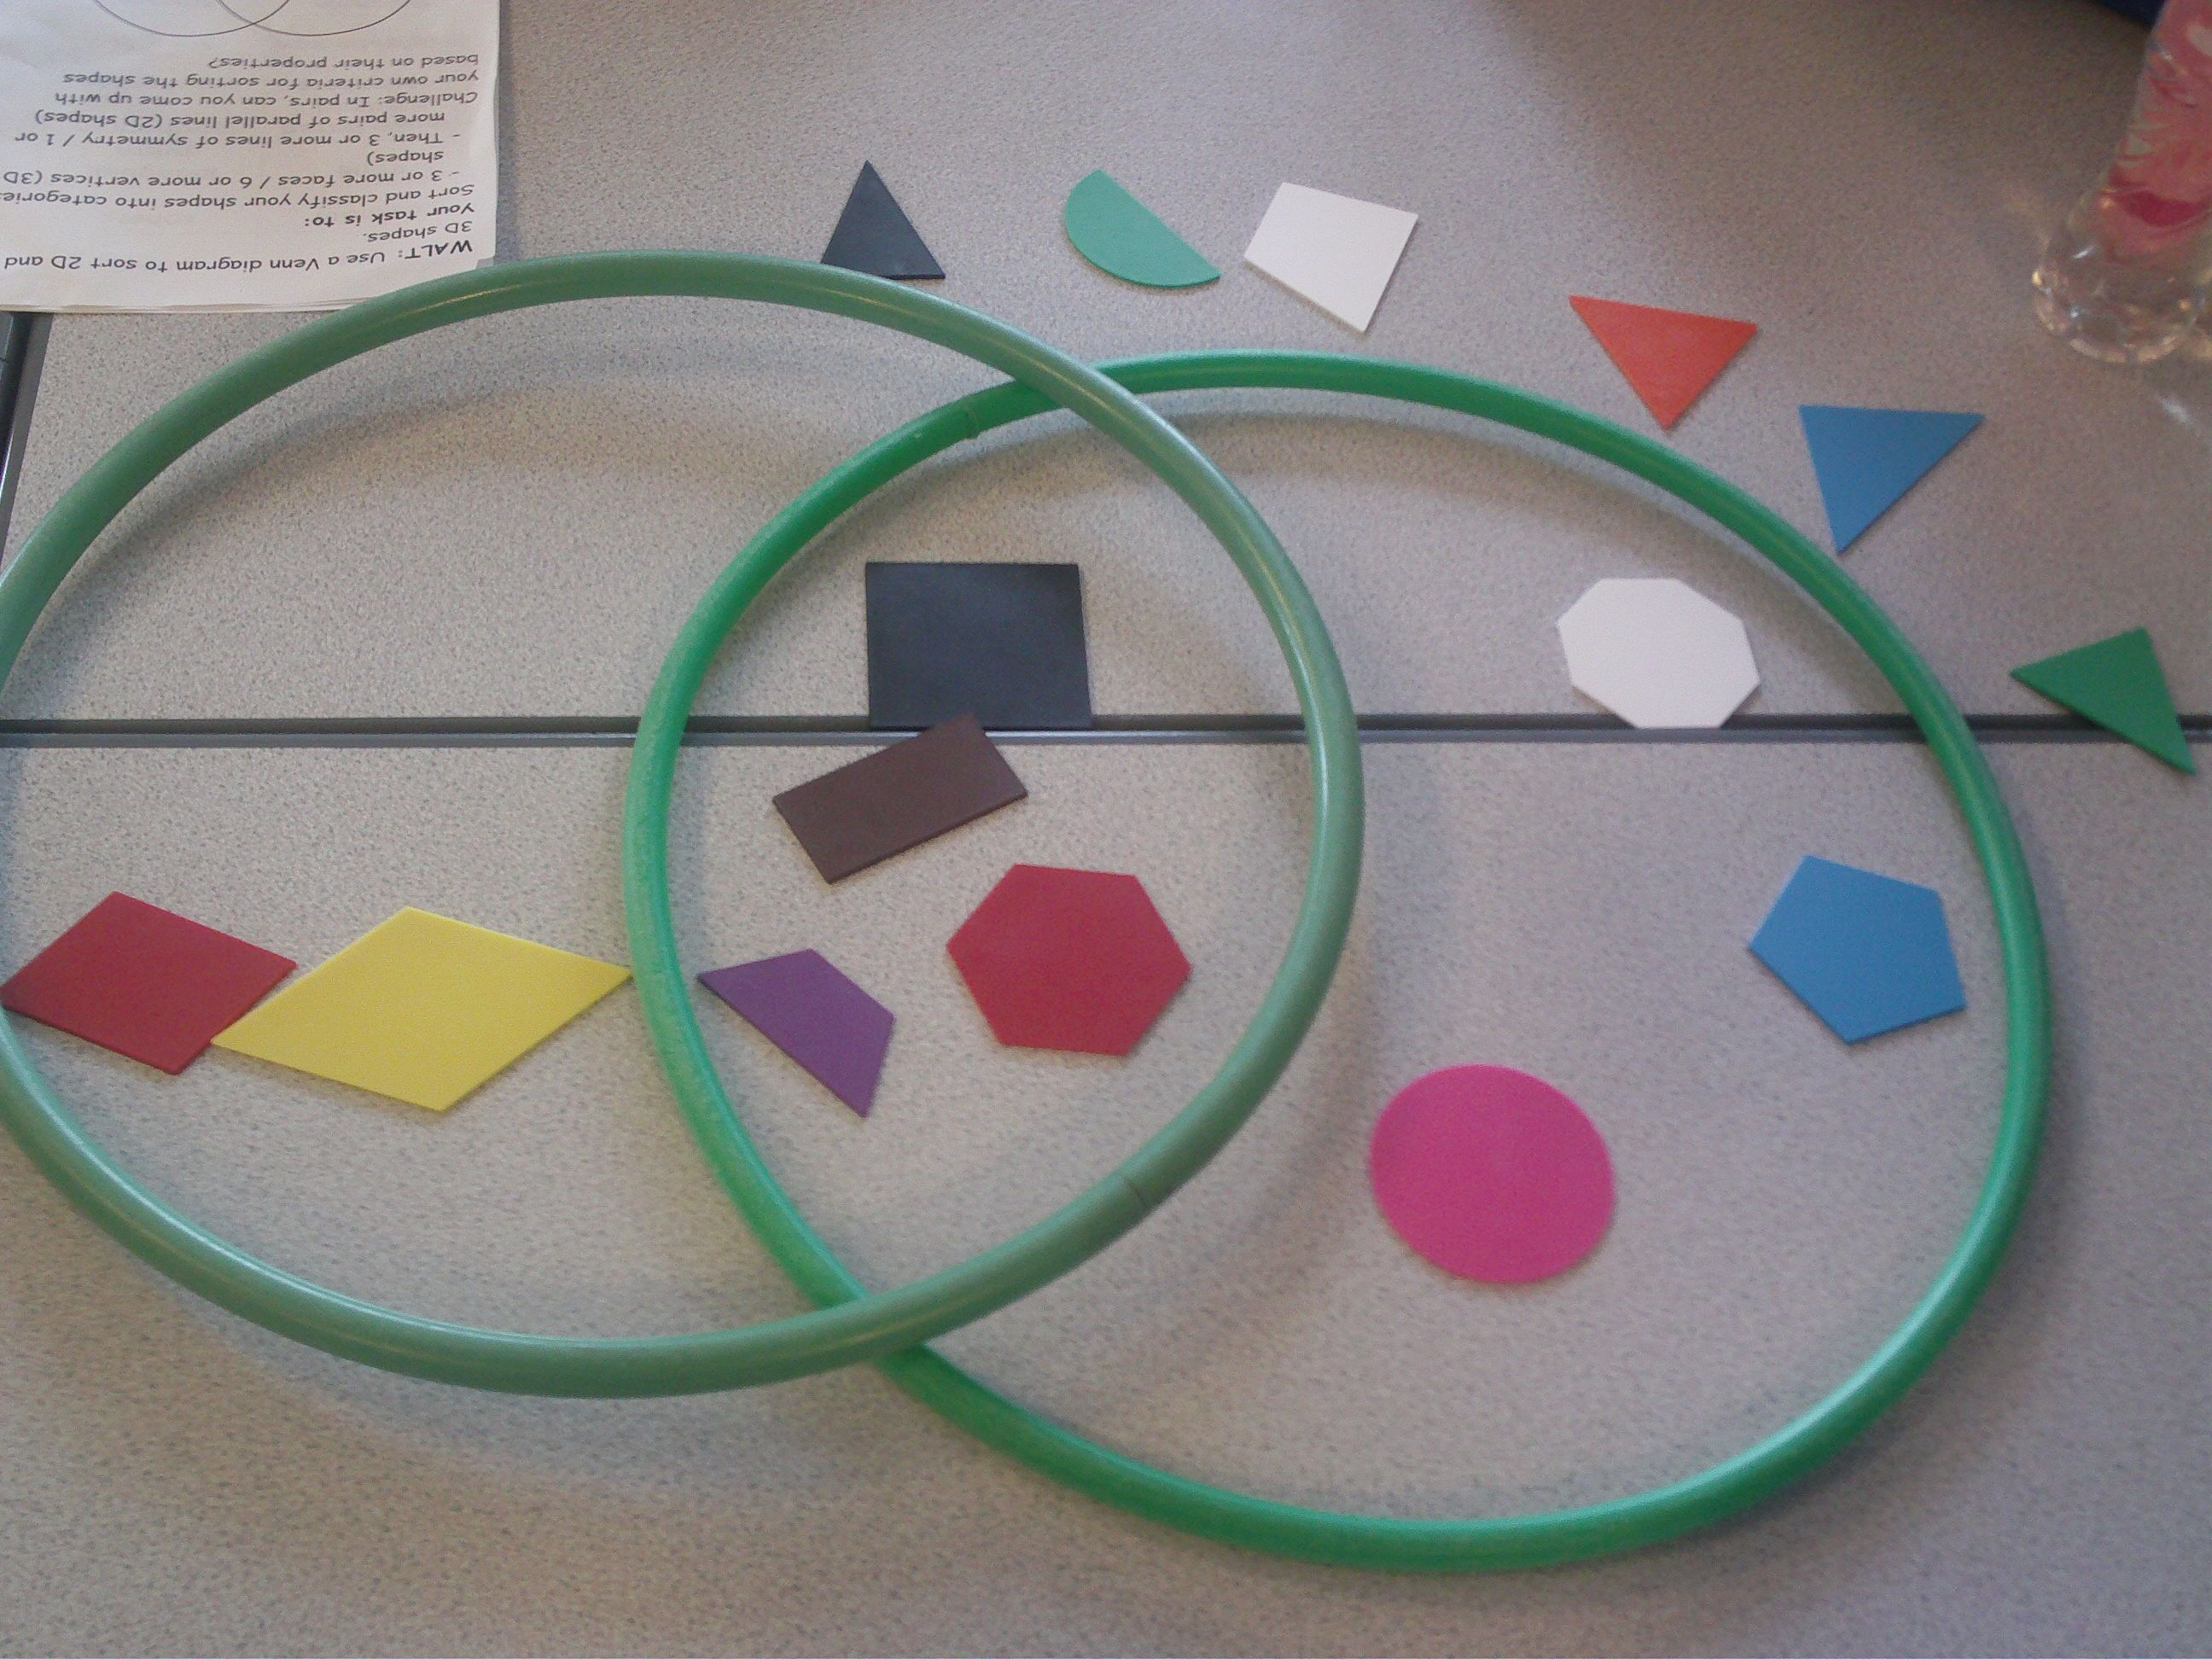 venn diagram sorting shapes canada soil 2d or 3d shape with diagrams according to 2 different properties which can be differentiated for ability groups as part of this topic